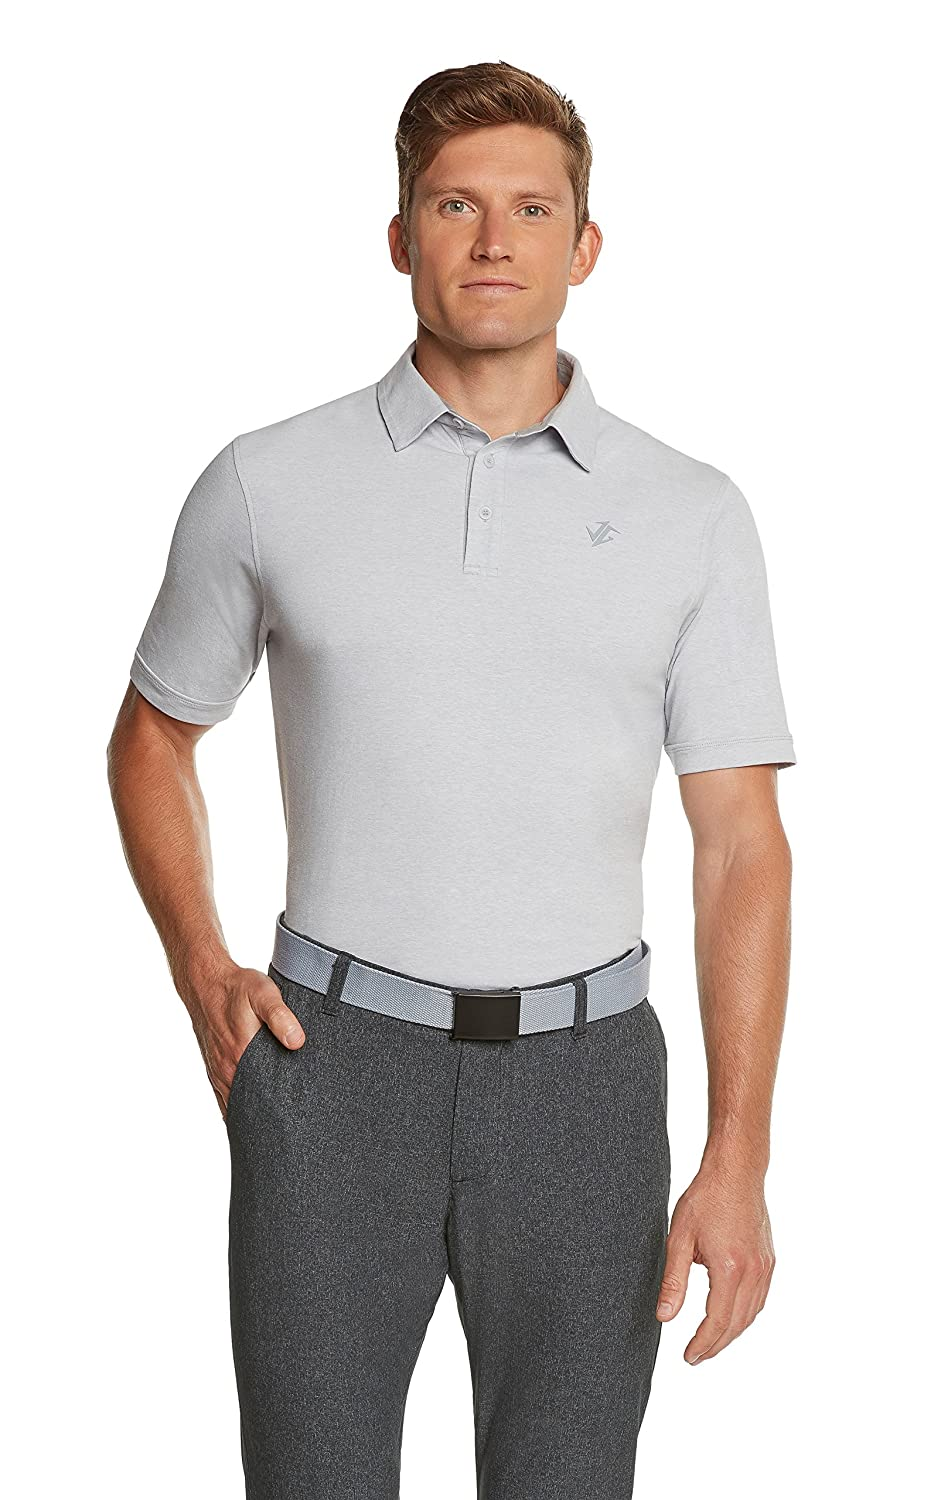 57e668bfd7 Tuck In Polo Shirt Business Casual - DREAMWORKS